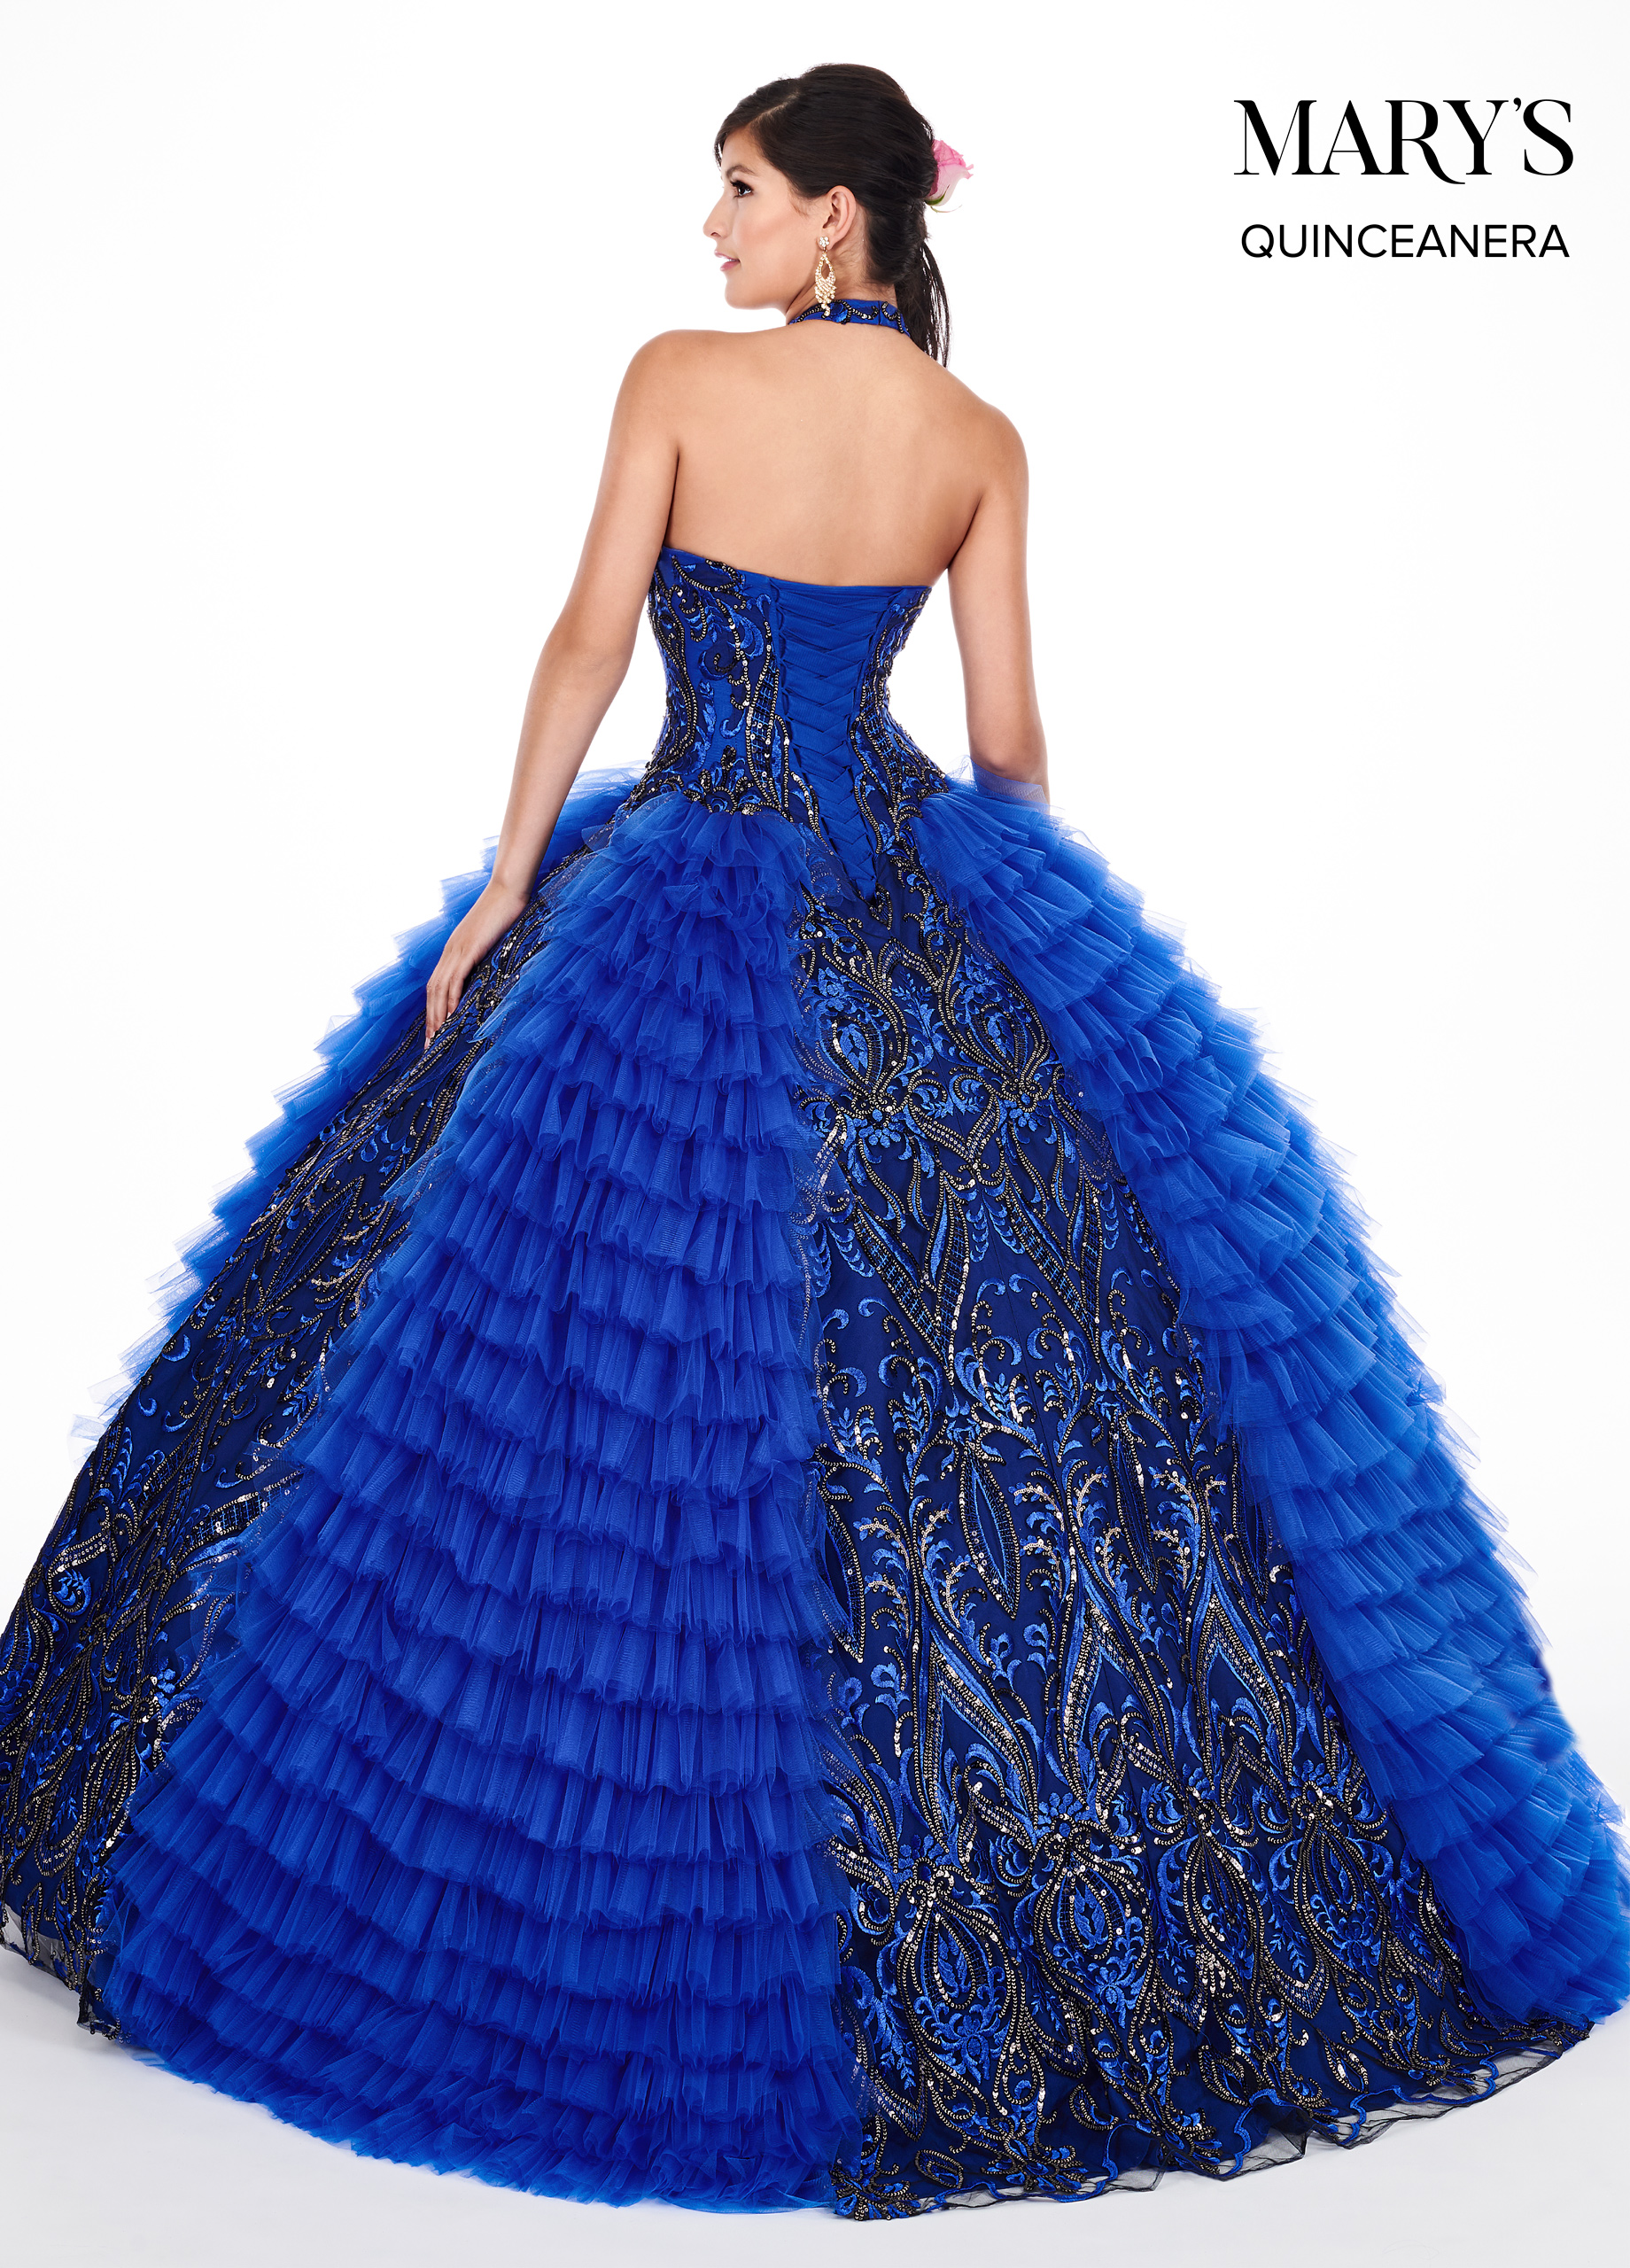 Marys Quinceanera Dresses | Mary's Quinceanera | Style - MQ2050